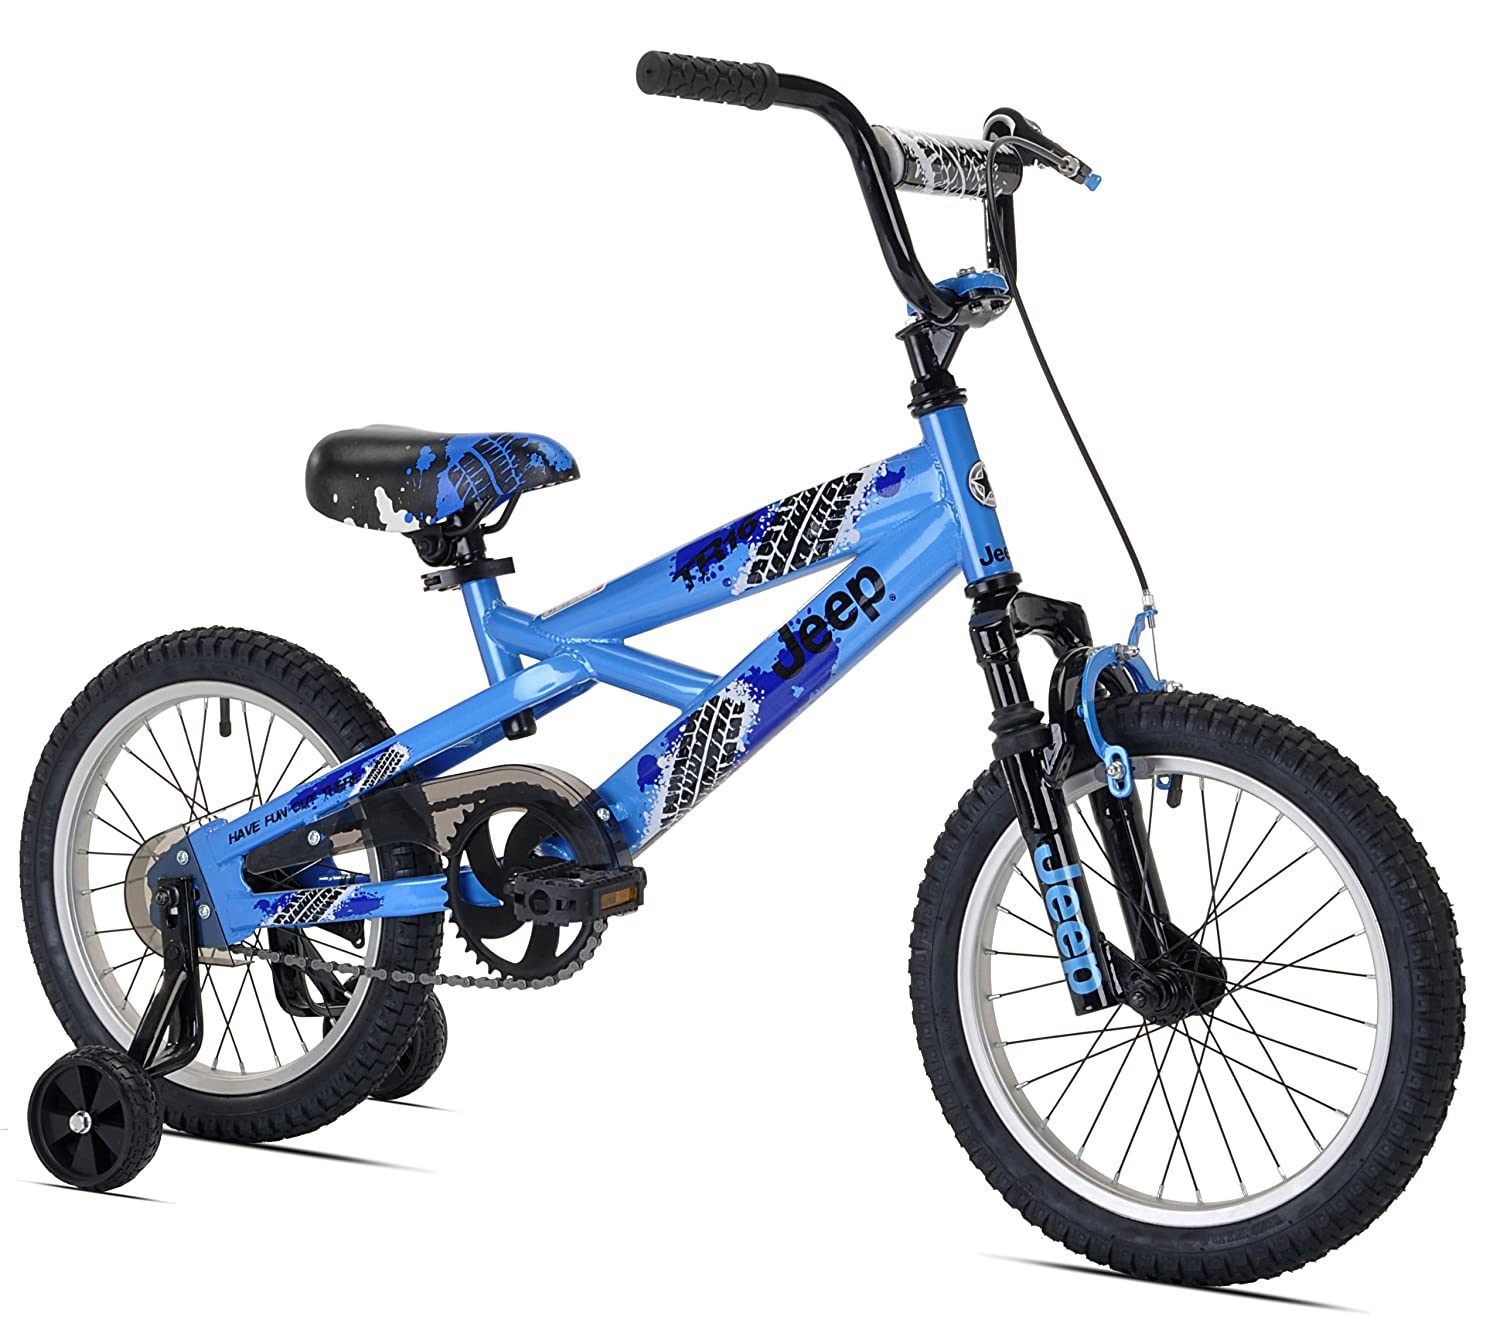 Bikes For Boys Amazon com Jeep Boy s Bike